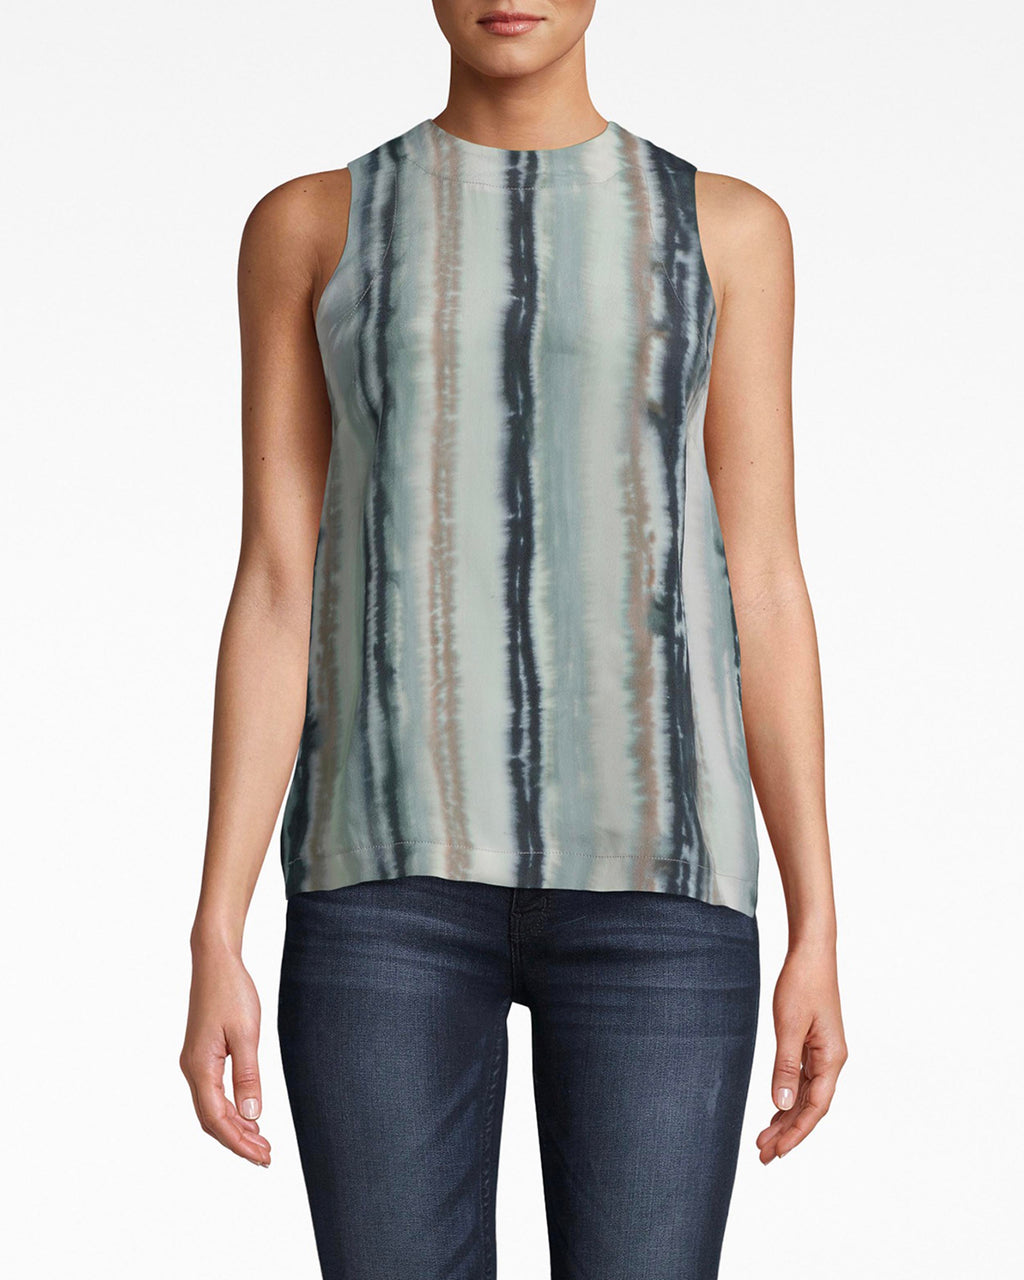 BA10174 - INK STRIPE SILK TANK TOP - tops - blouses - The perfect match for denim. The stripes on this high neck tank elongate your silhouette. The color palette balances between vivid and subded. Exposed back cutout and button for closure.